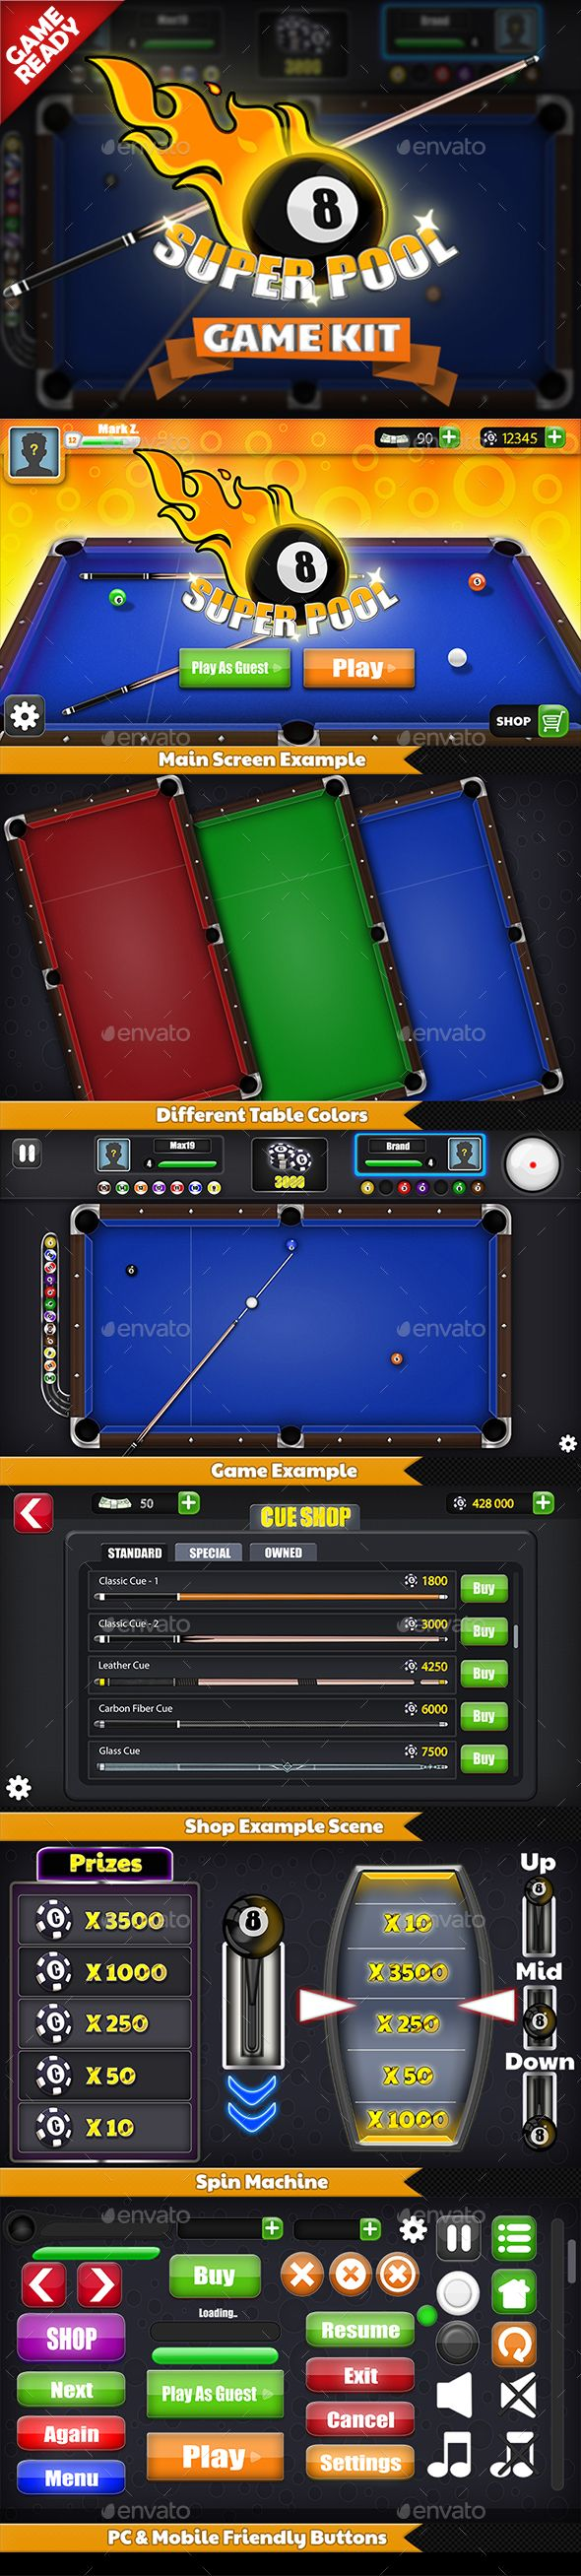 Super Pool - Billiard Game Kit Download here: https://graphicriver.net/item/super-pool-billiard-game-kit/18940696?ref=KlitVogli